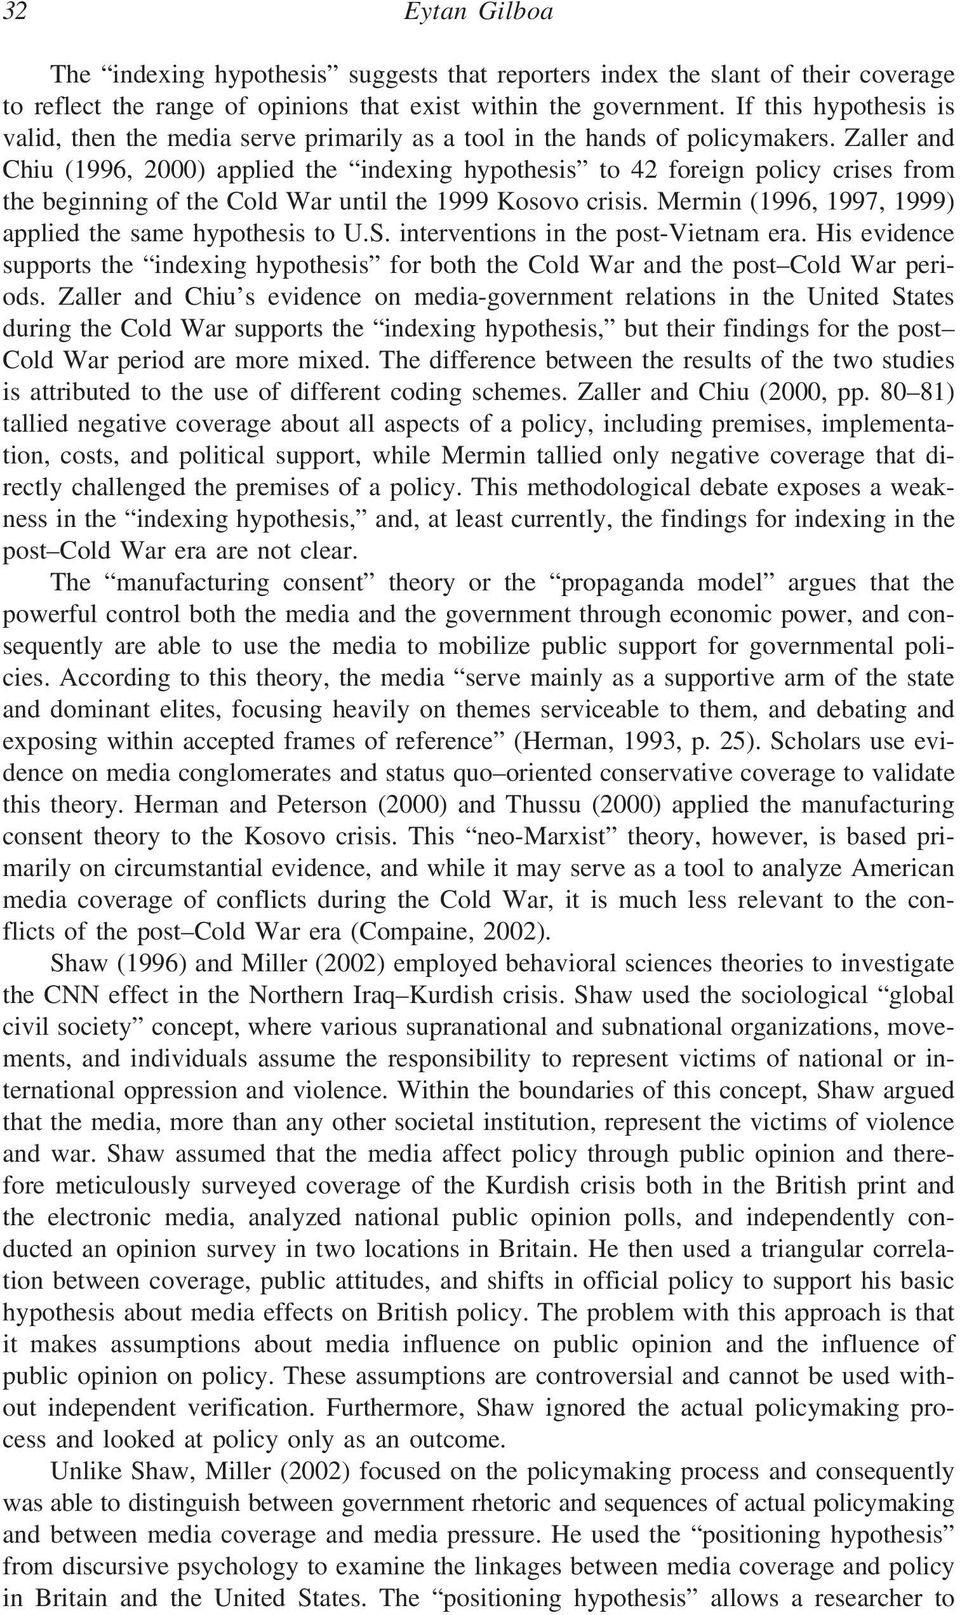 Zaller and Chiu (1996, 2000) applied the indexing hypothesis to 42 foreign policy crises from the beginning of the Cold War until the 1999 Kosovo crisis.